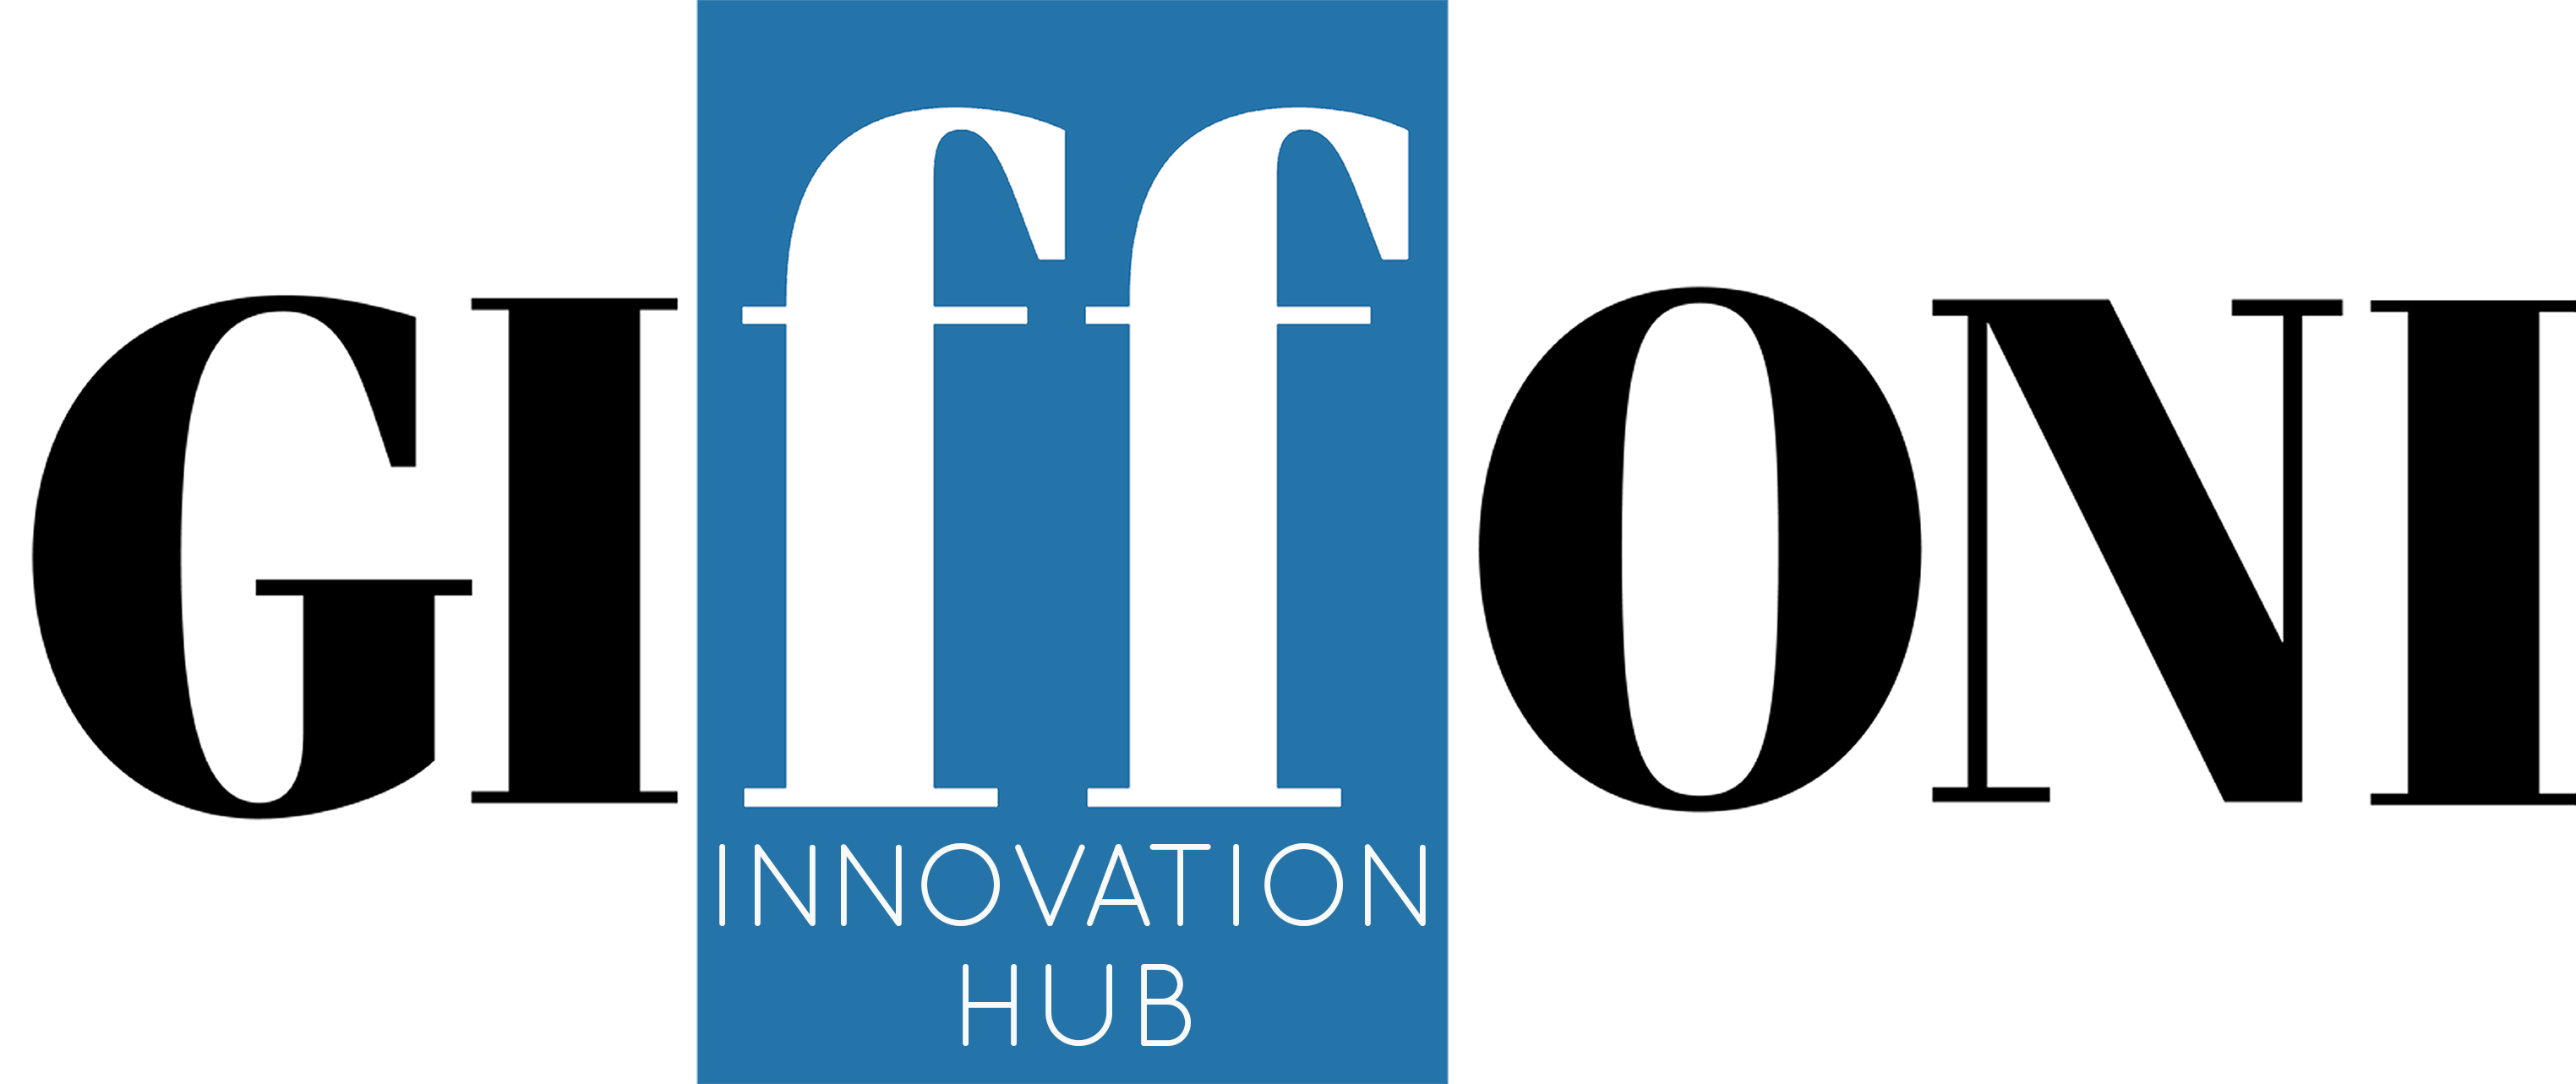 Featured in Giff On Innovation Hub